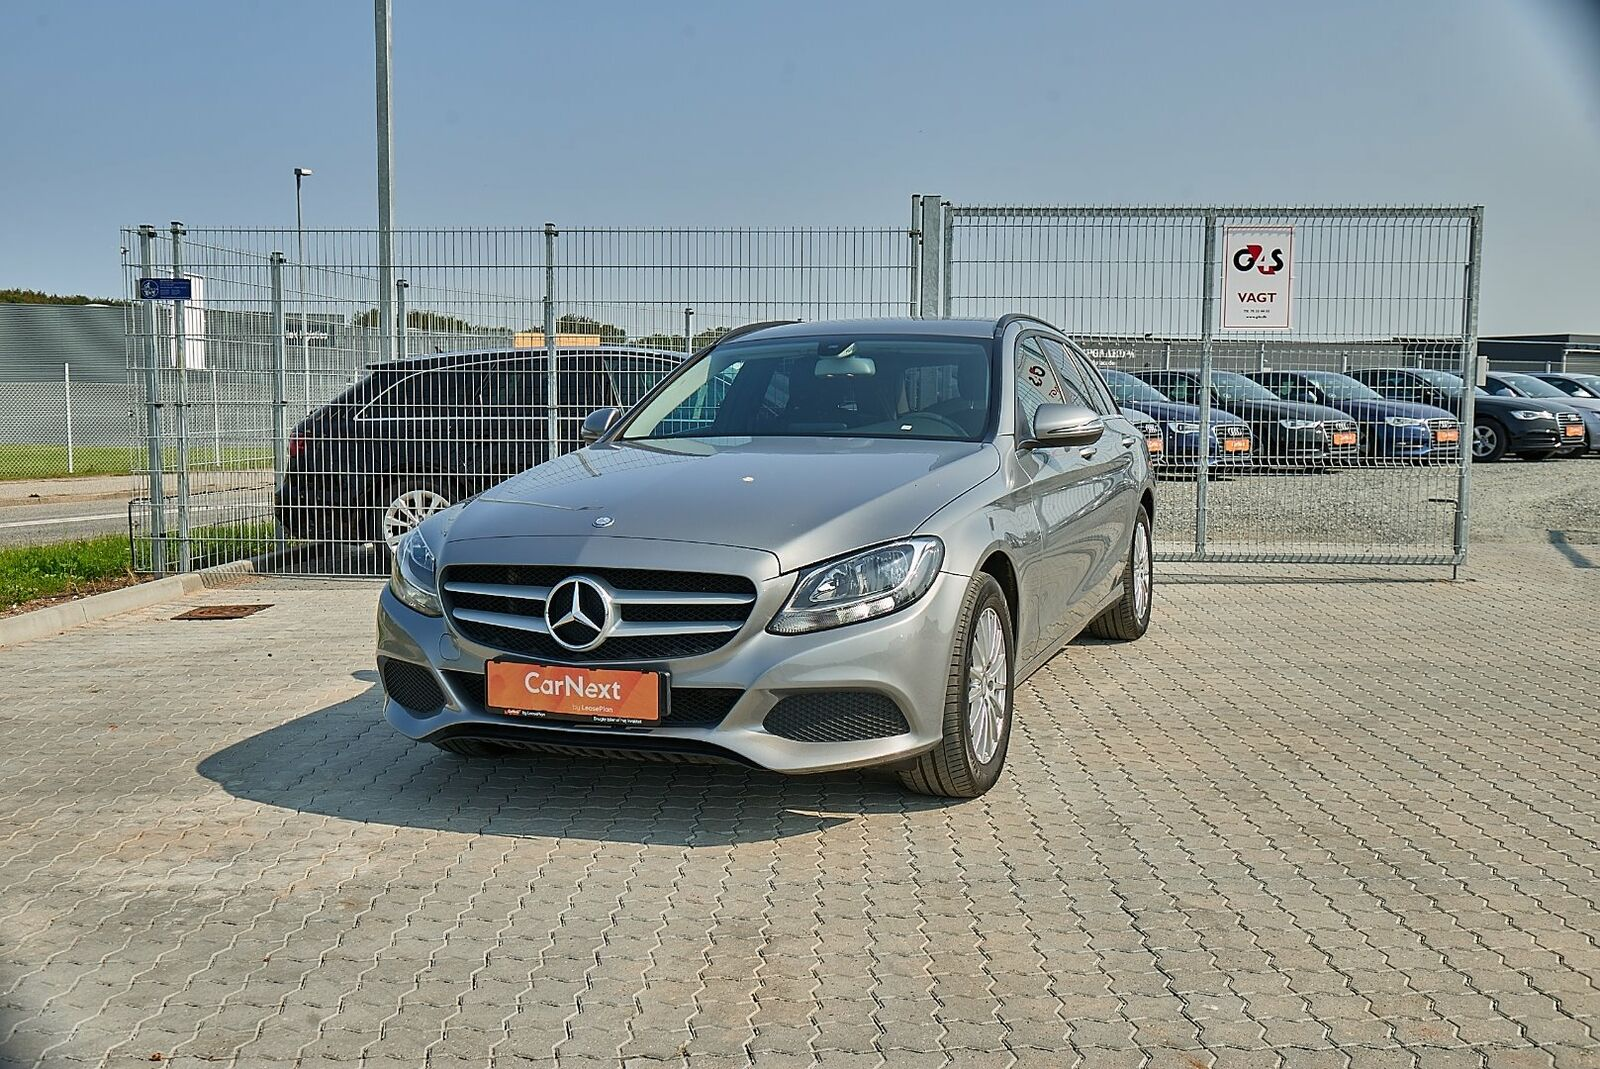 Mercedes C200 d 1,6 Business stc. aut. 5d - 239.900 kr.